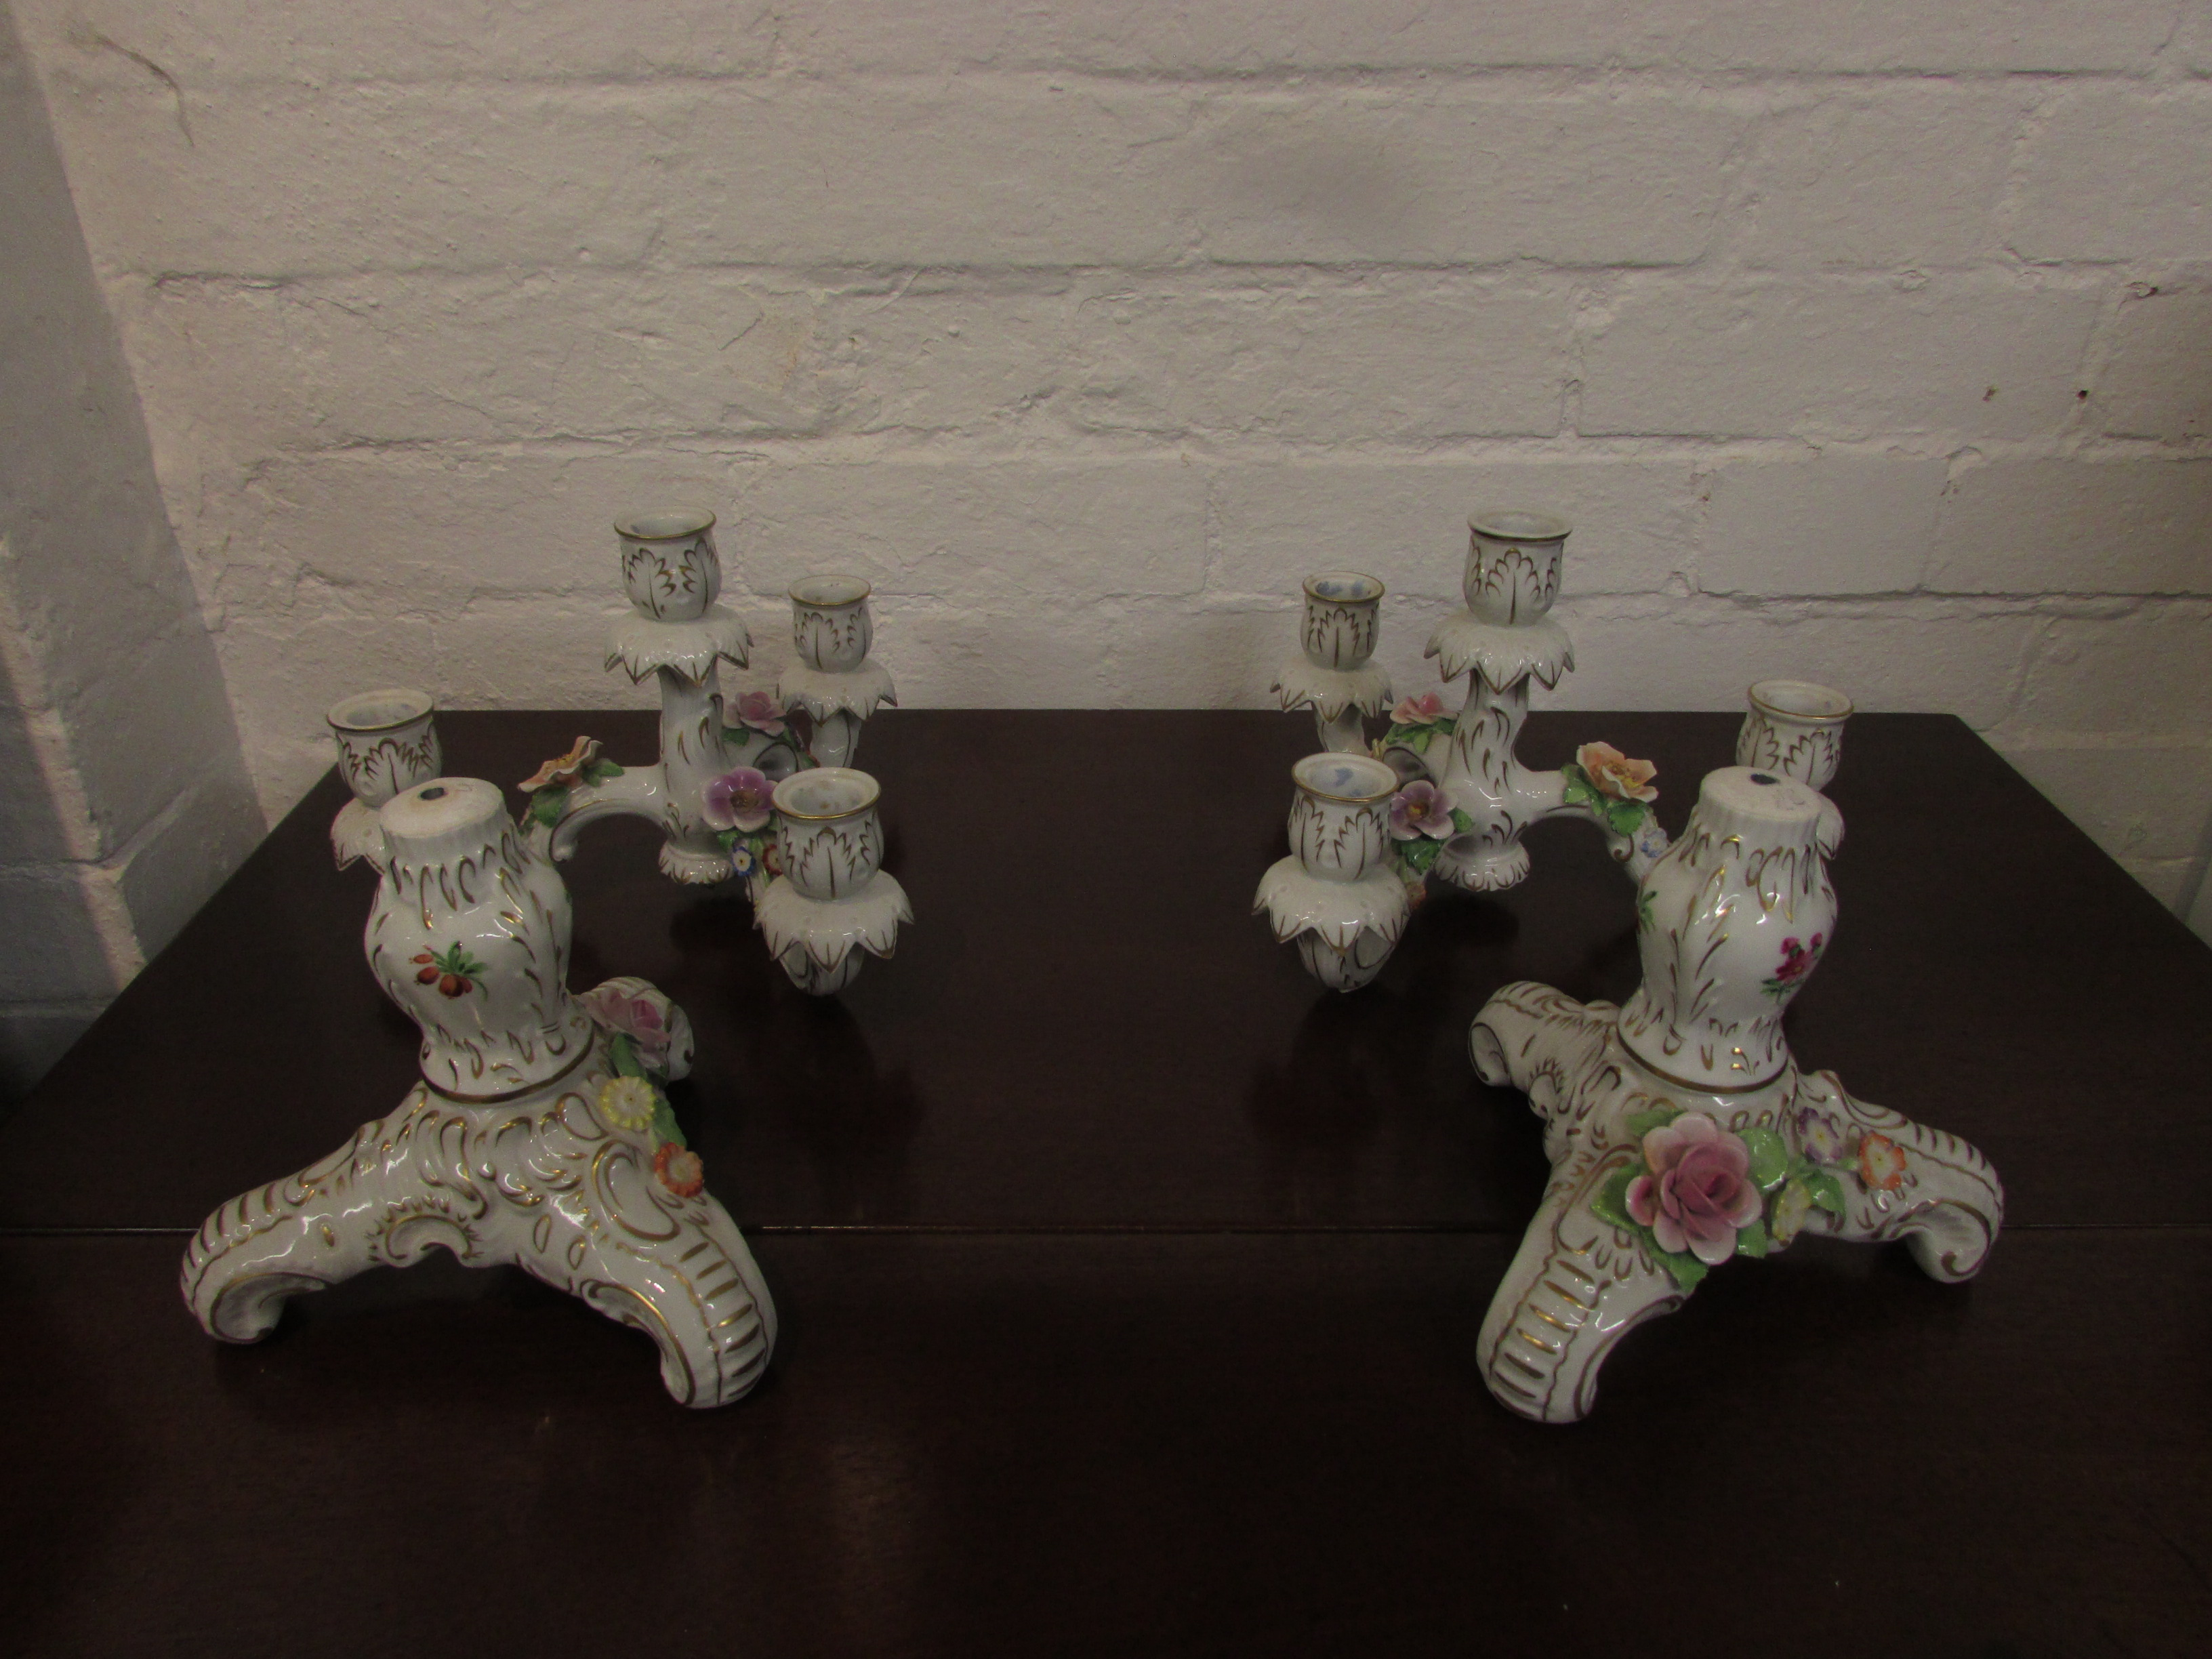 Lot 7 - Pair of Porzellan Manufaktur Plaue floral encrusted candle holders, three-branch with central